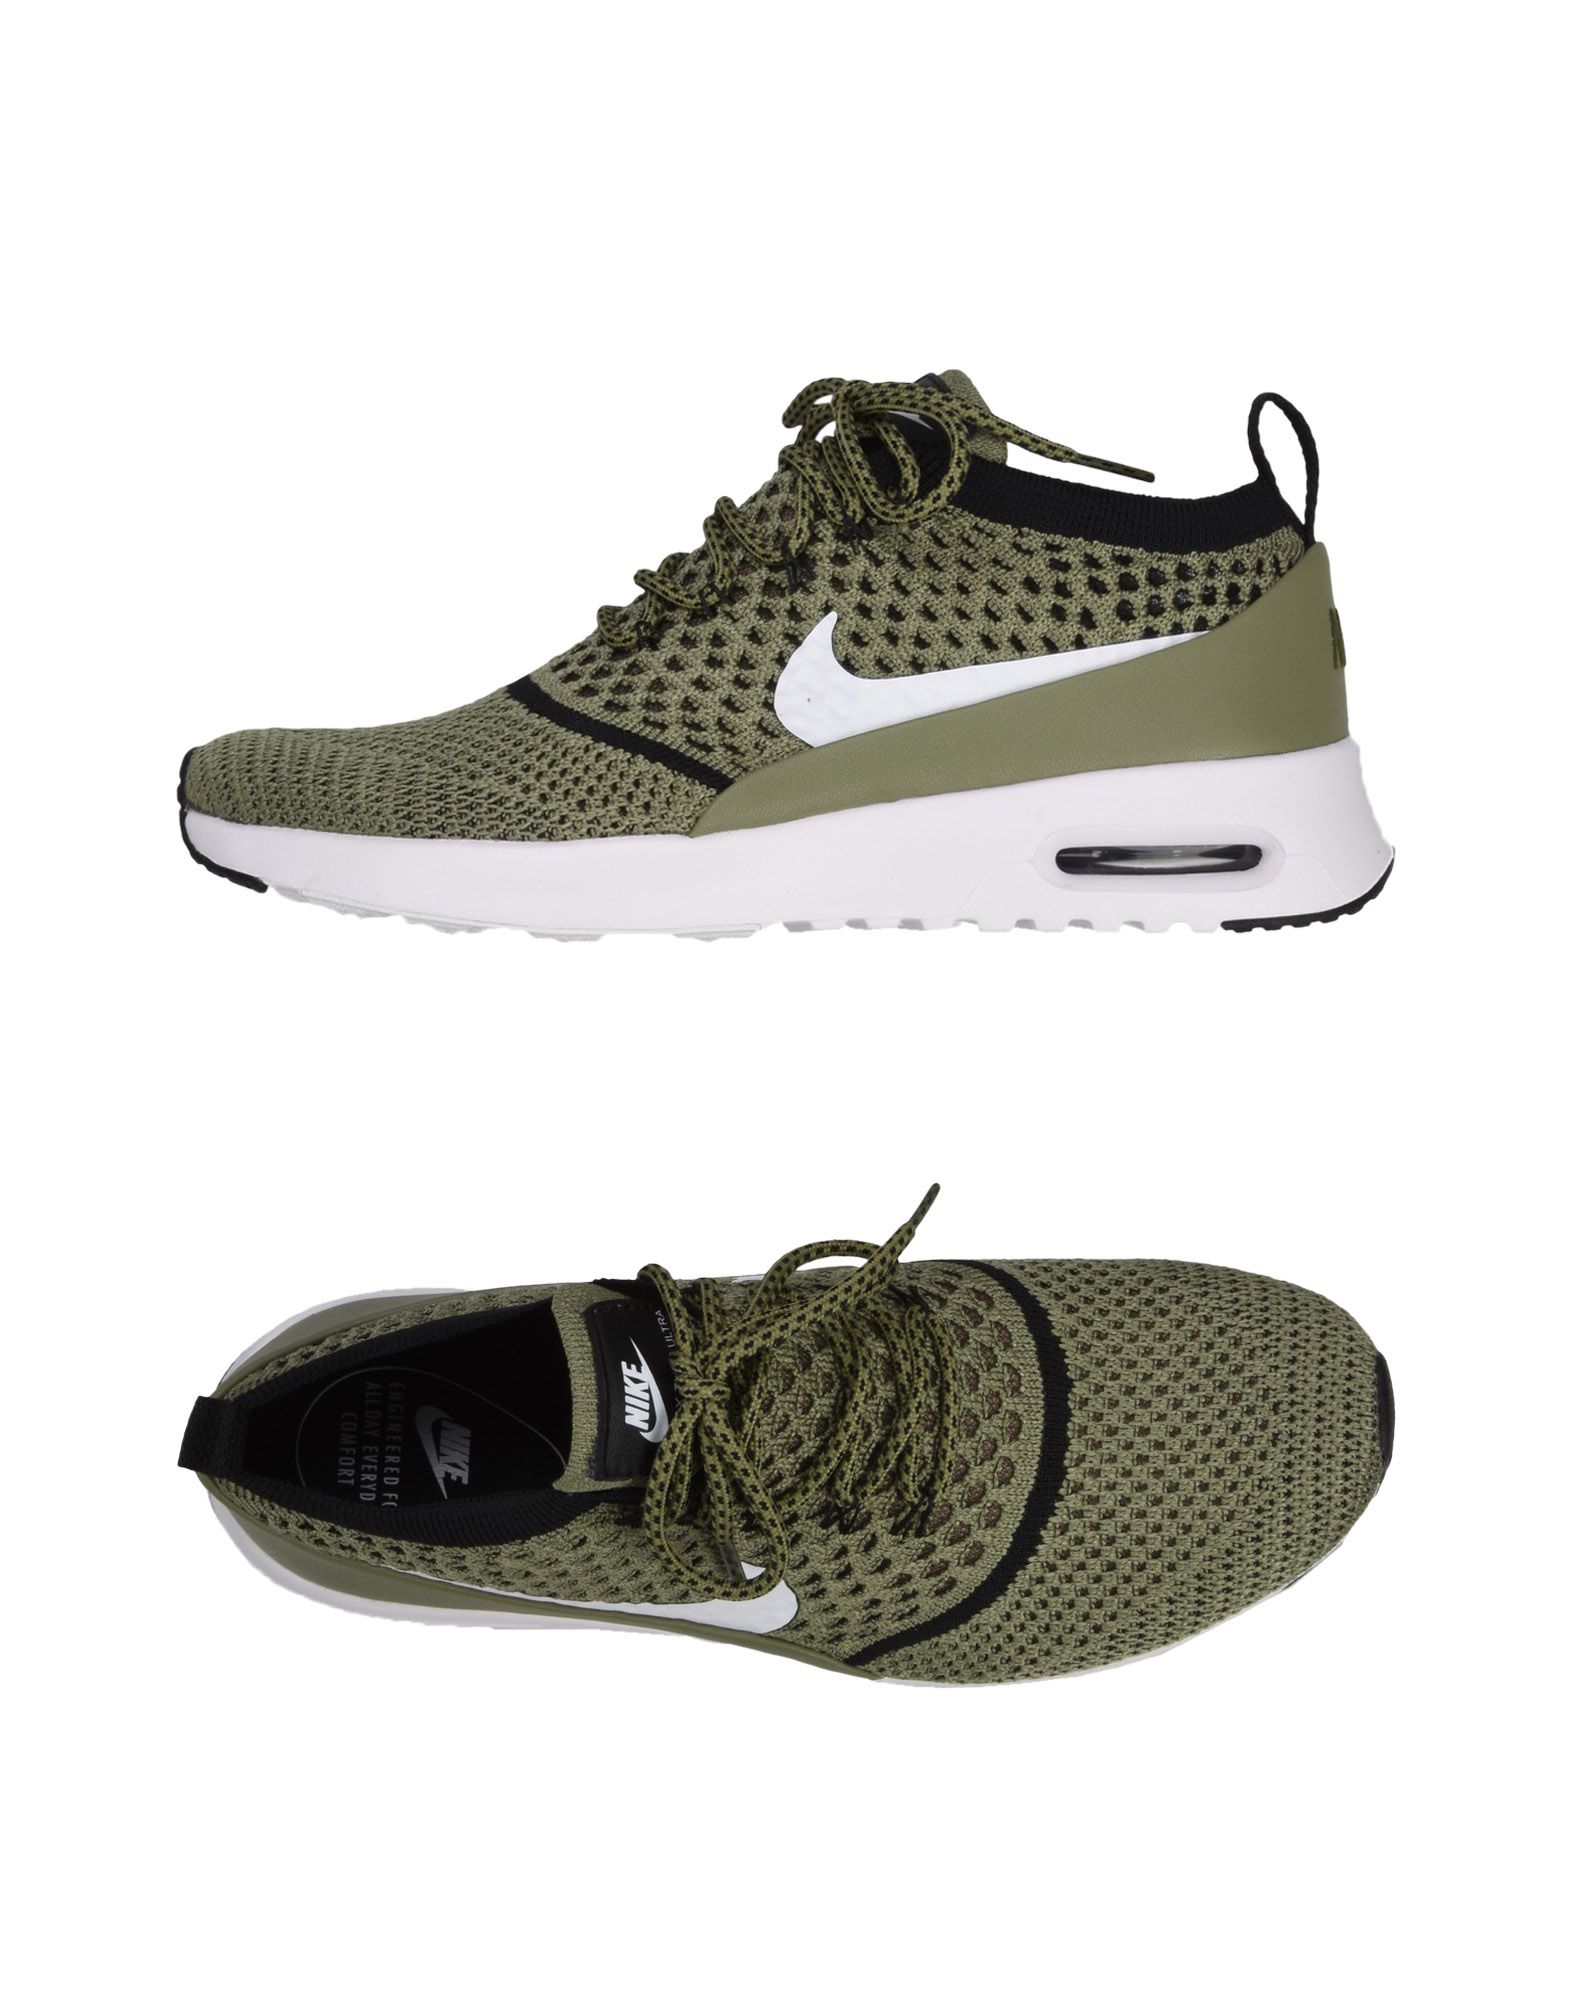 ChaussuresNike Air Flyknit Max Thea Ultra Flyknit Air Femme ChaussuresNike sur 340a9a